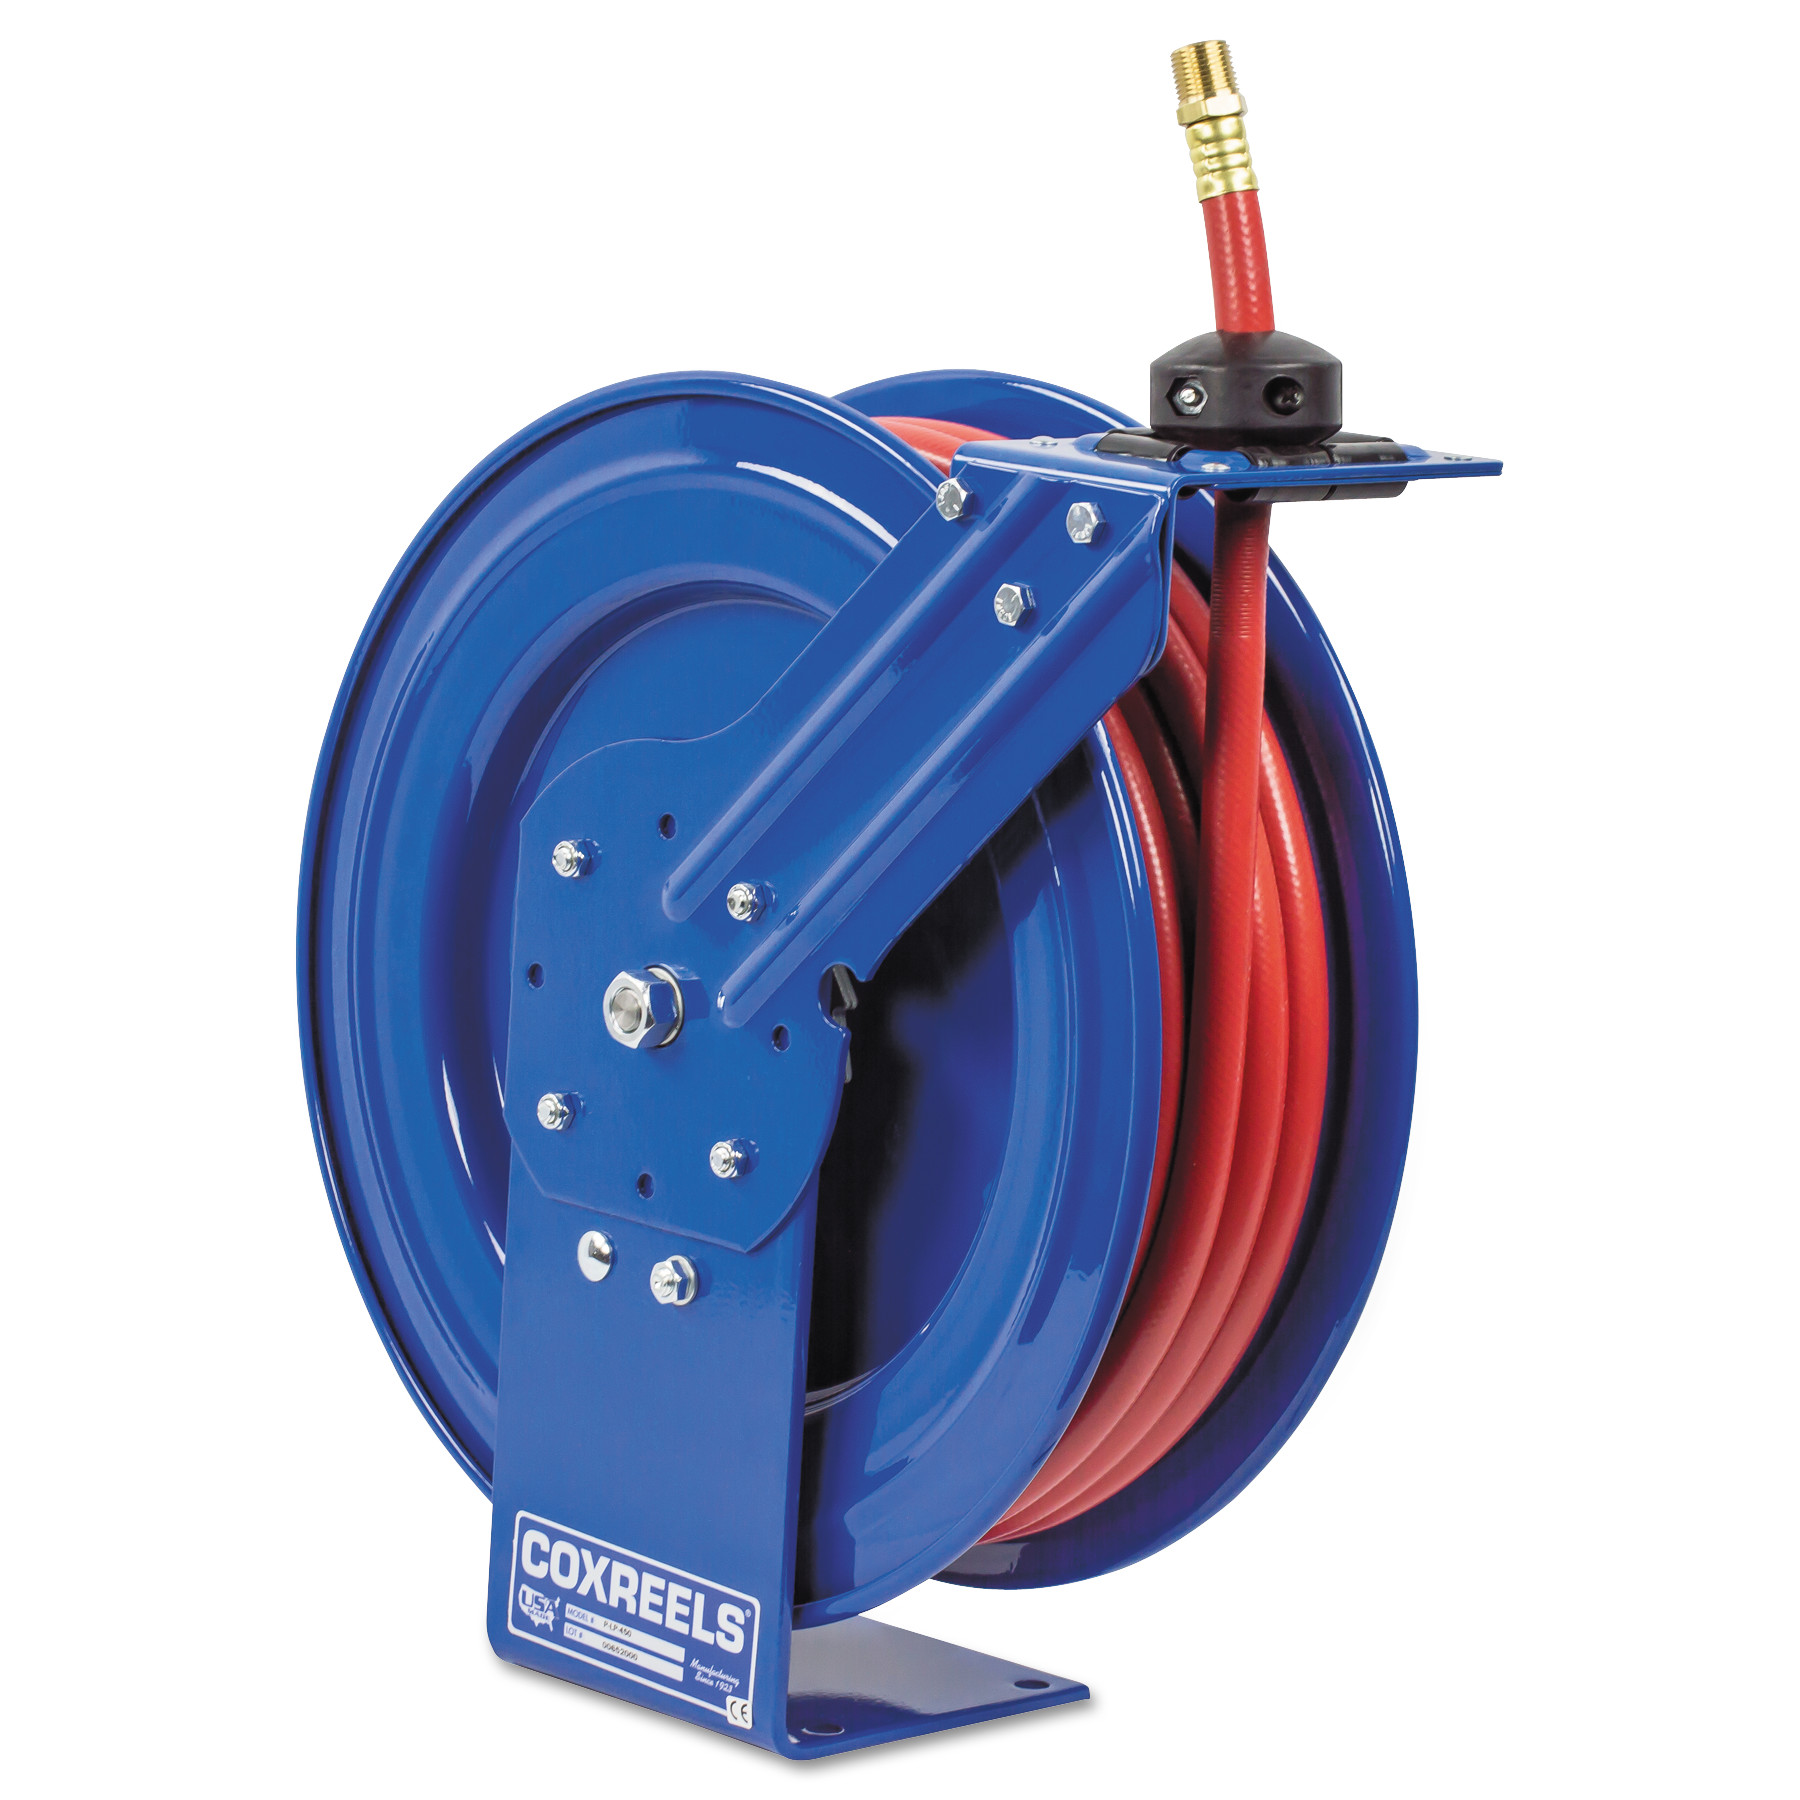 Coxreels Performance Hose Reels, 1 2 in x 50 ft by Coxreels®